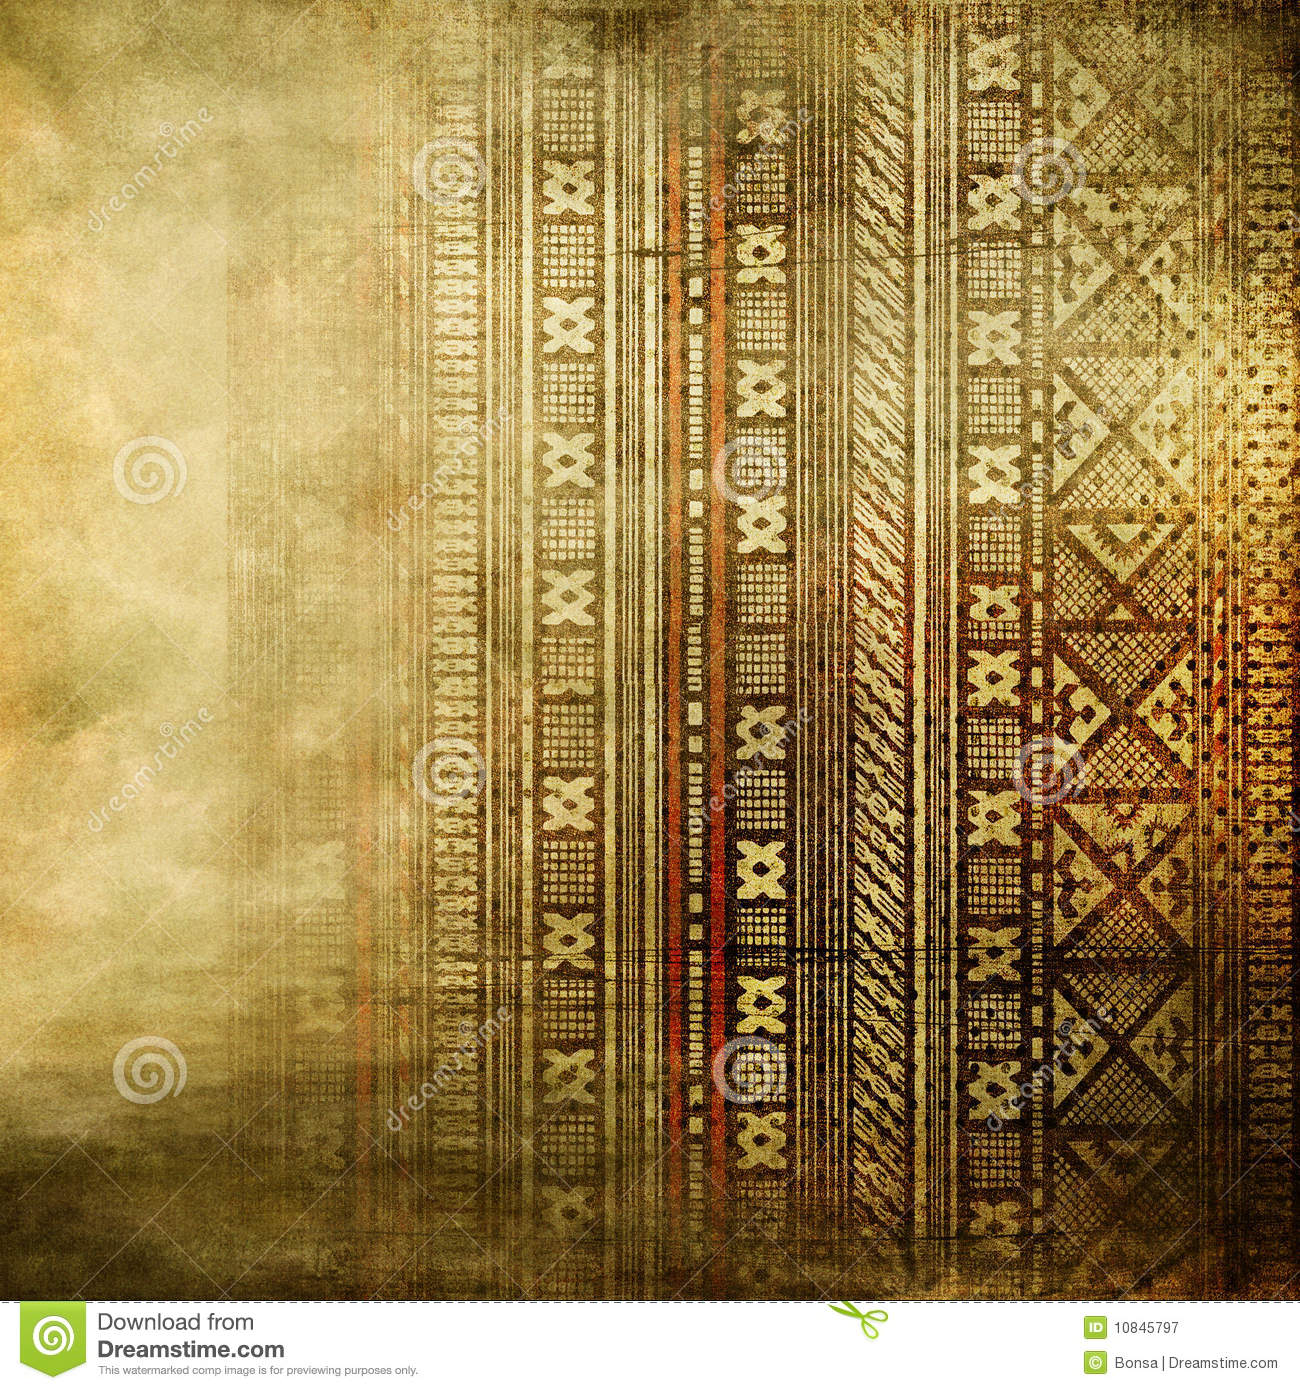 African Texture In Golden Colors Stock Image Image 10845797